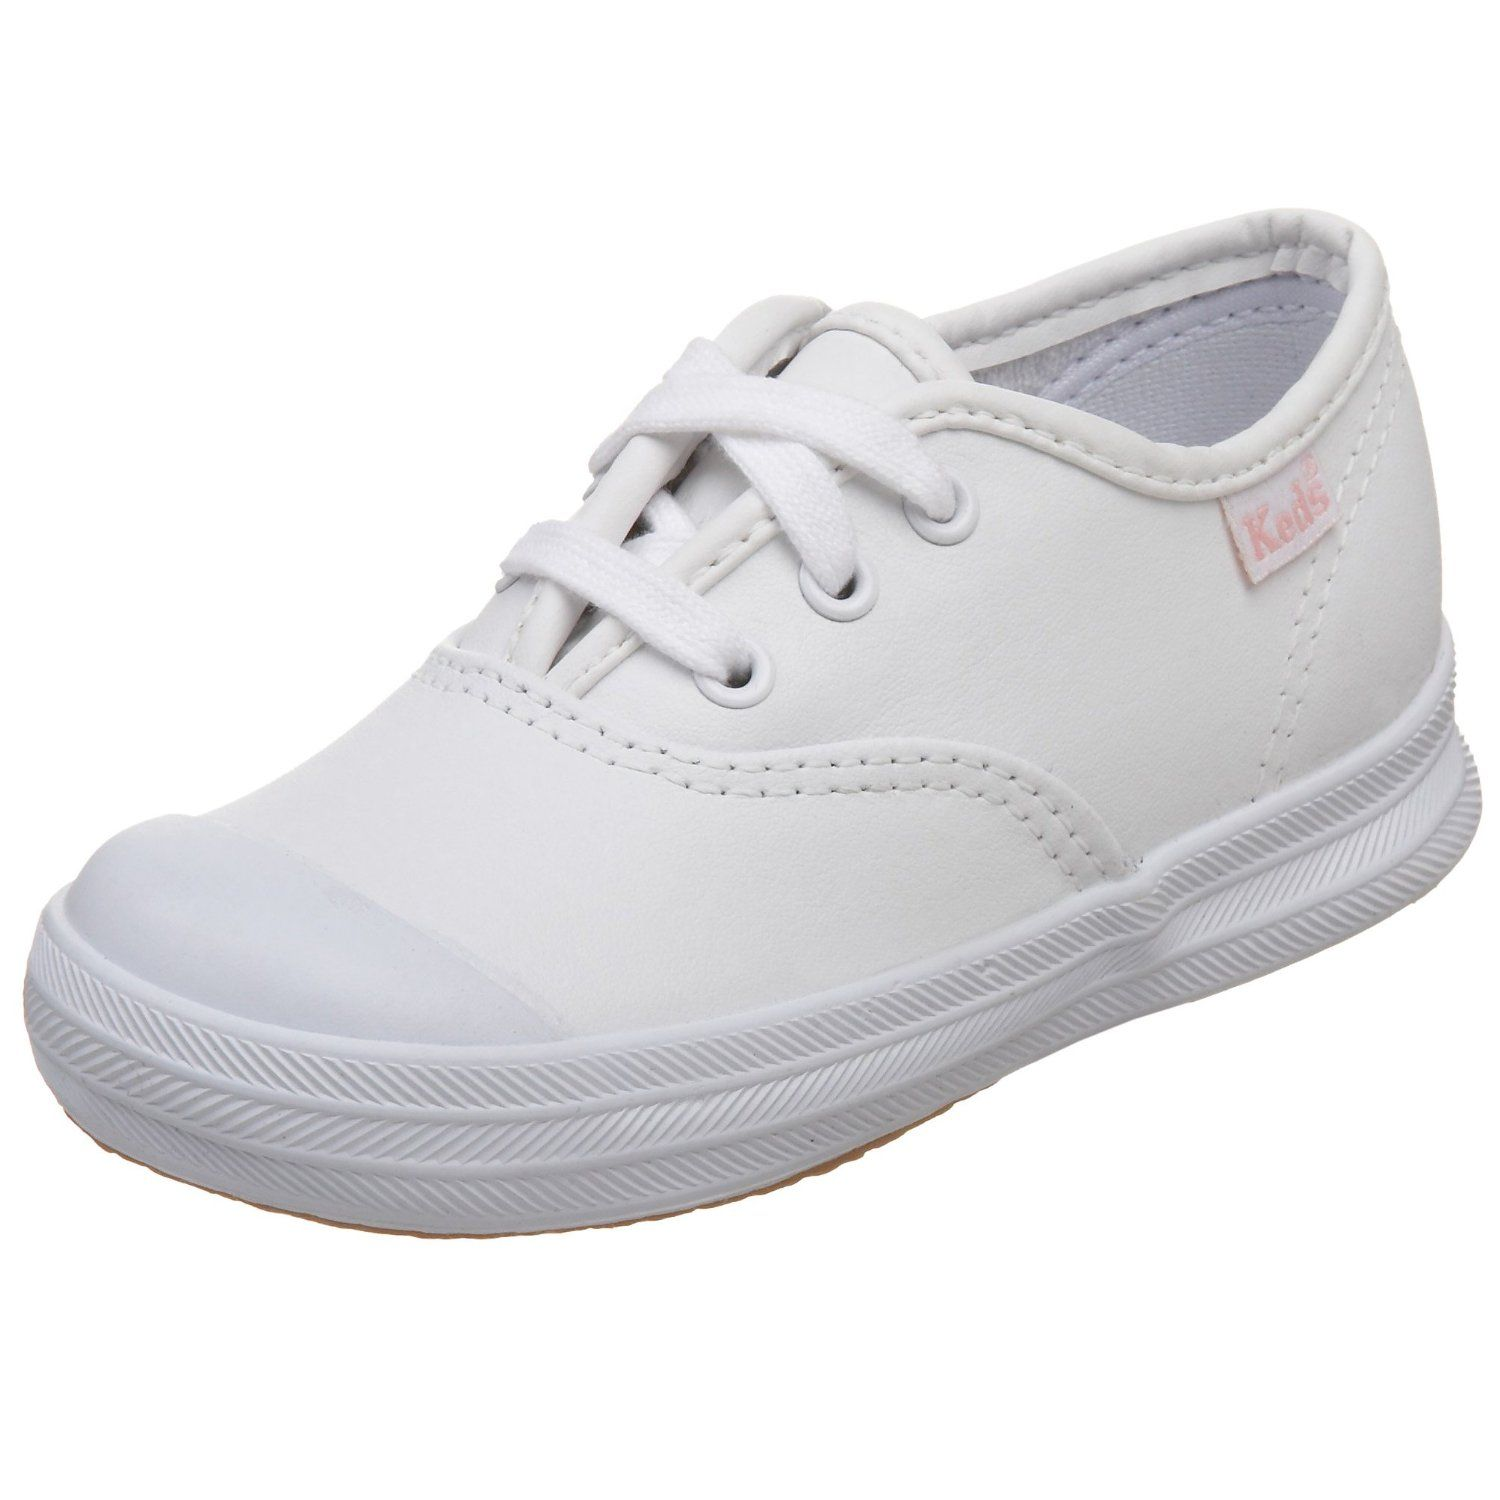 35b93f0e7a0dd Amazon.com: Keds Champion Lace-Up Toe Cap Sneaker (Infant/Toddler ...